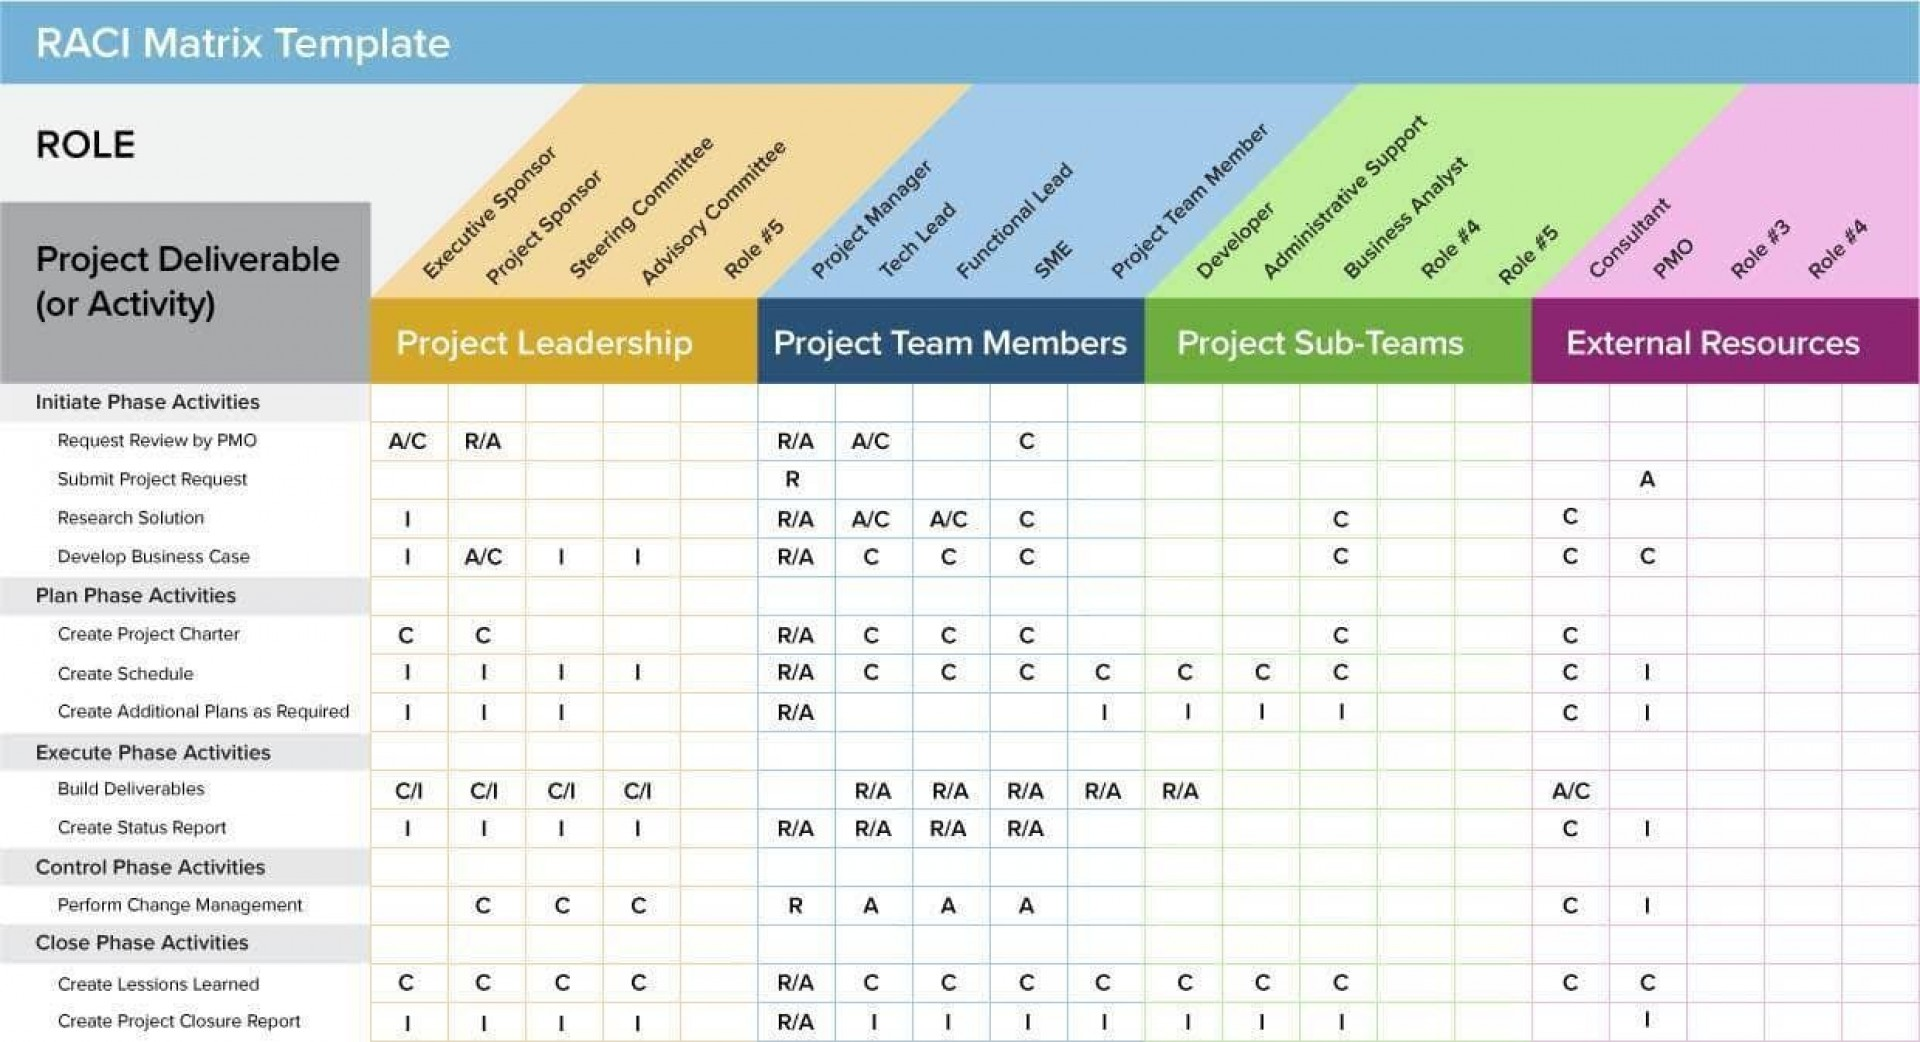 003 Exceptional Project Management Statu Report Template Free Photo  Excel Weekly Word1920